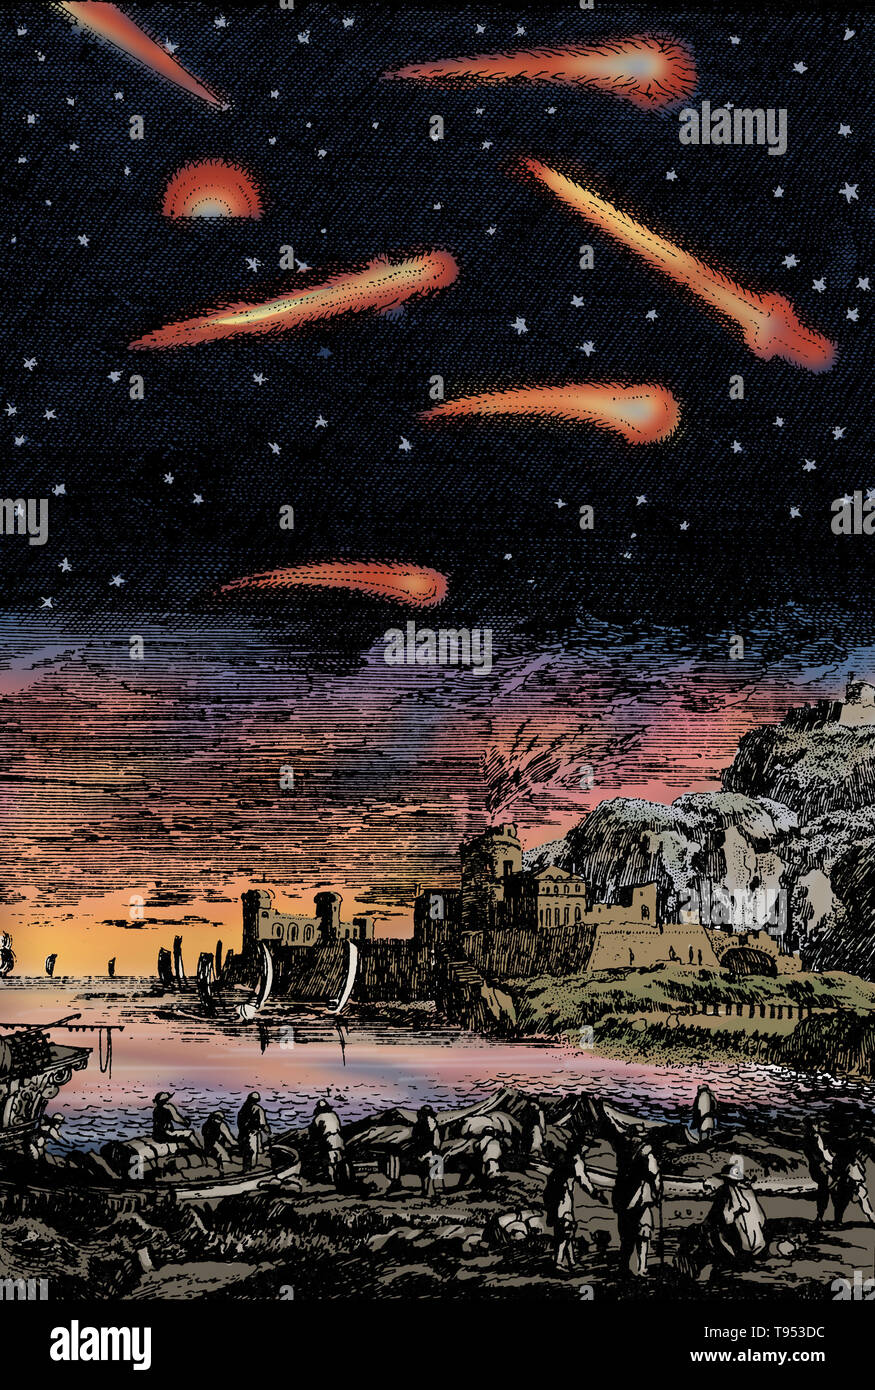 Engraving entitled: 'Calamities on Earth Associated with the Passage of Comets', from the 17th century. Before the invention of the telescope, comets seemed to appear out of nowhere in the sky and gradually vanish out of sight. They were usually considered bad omens of deaths of kings or noble men, or coming catastrophes, or even interpreted as attacks by heavenly beings against terrestrial inhabitants. A comet is a celestial object that orbits the Sun along an elongated path. - Stock Image